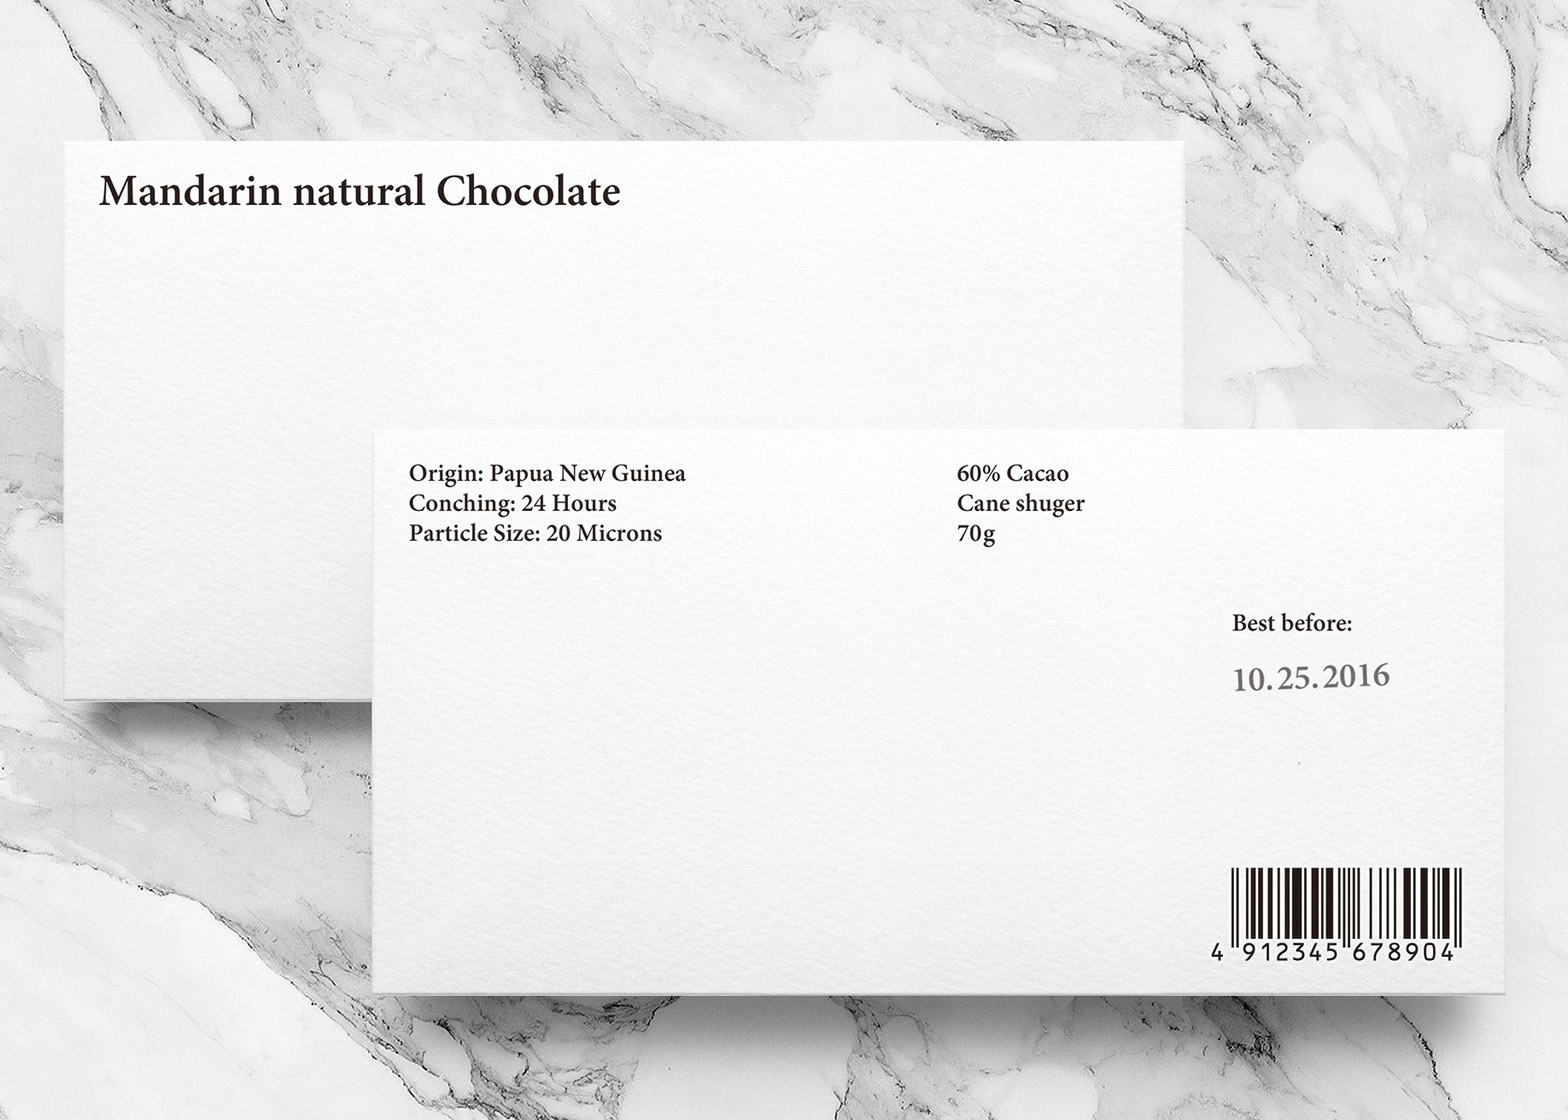 mandarin-natural-chocolate-yuta-takahashi-branding-packaging-design_dezeen_1568_3